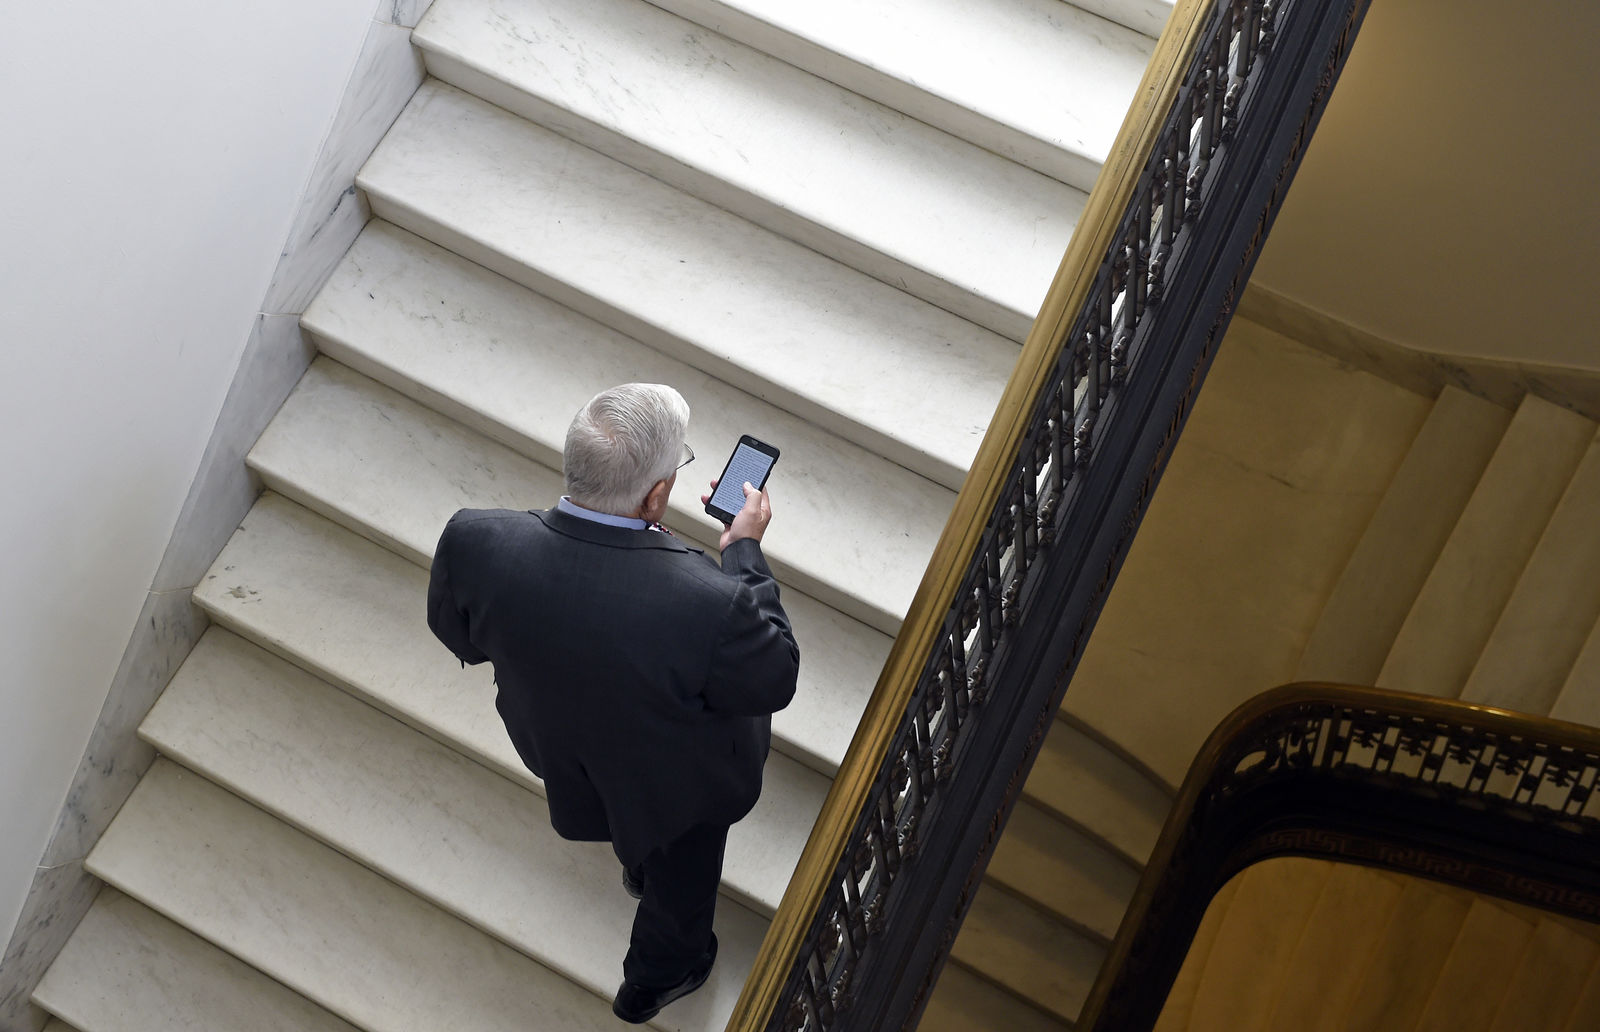 FILE - In this Feb. 4, 2015, file photo, Sen. Mike Enzi, R-Wyo., checks his phone as he arrives for a bipartisan lunch in the Kennedy Caucus Room on Capitol Hill in Washington. Oregon Sen. Ron Wyden is proposing new legislation that would allow the Senate's Sergeant at Arms to spend taxpayer money protecting senators' private email accounts and personal devices amid persistent anxieties over the digital security of the American midterm vote. (AP Photo/Susan Walsh, File)